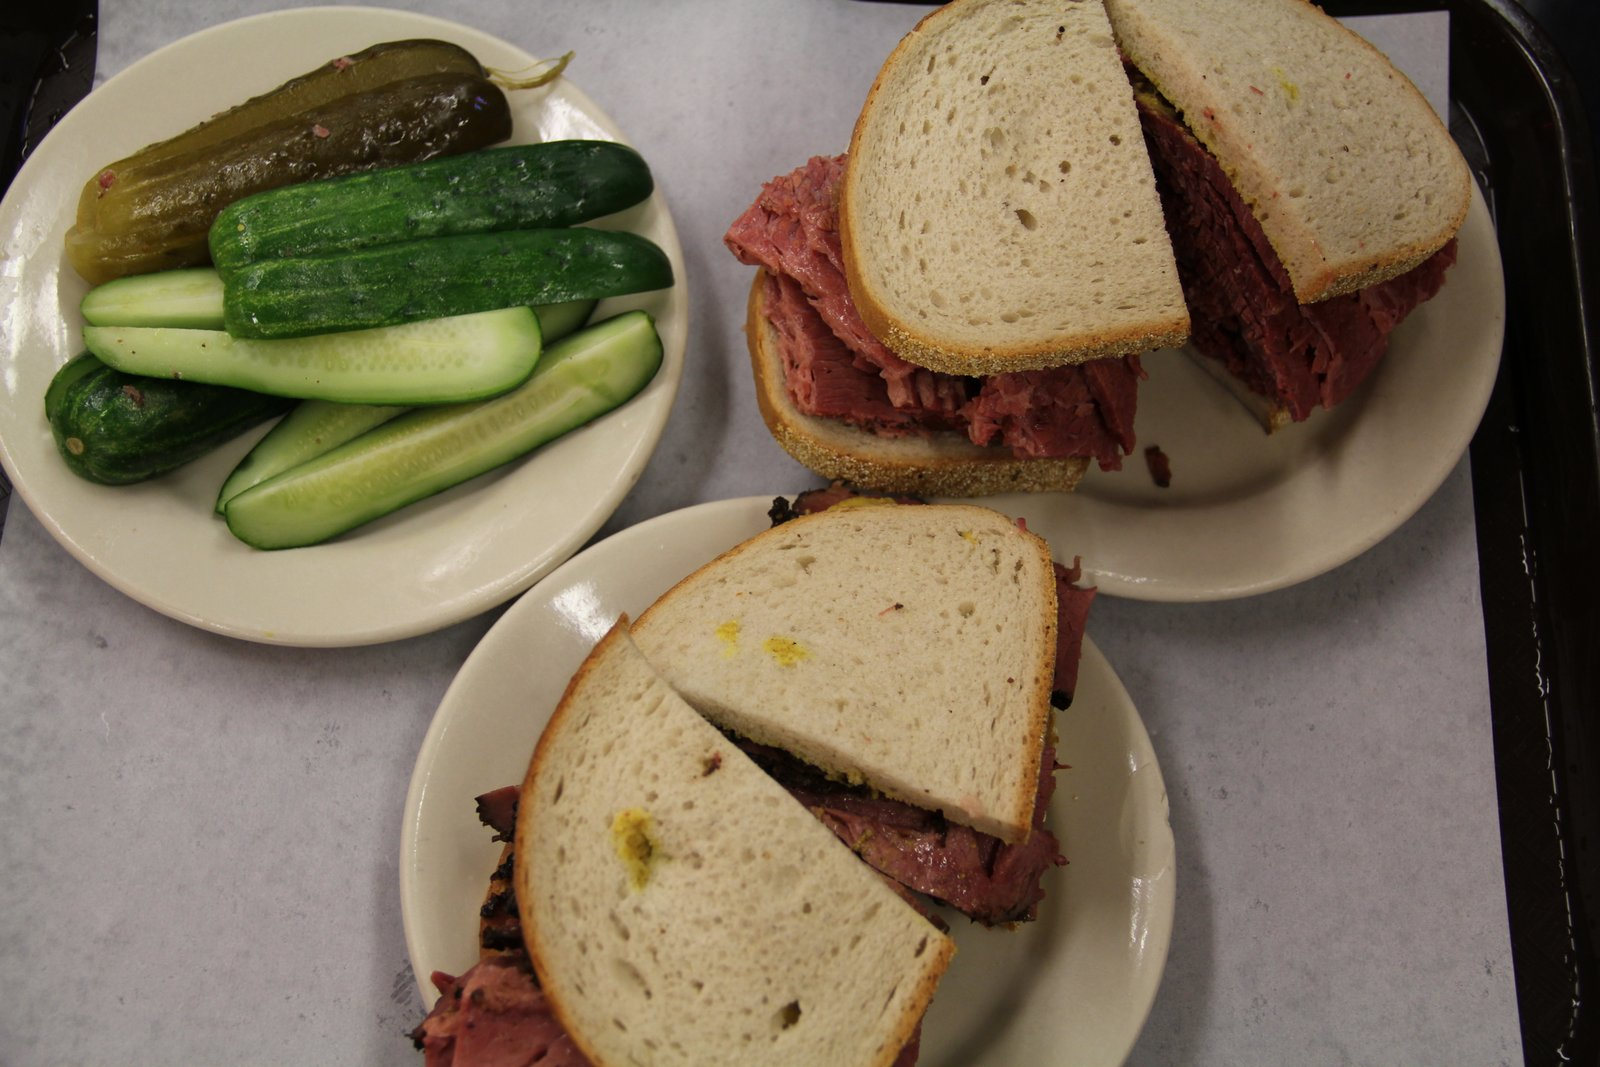 KATZS_DELICATESSEN_PASTRAMI_NEW_YORK_PHOTO_3483